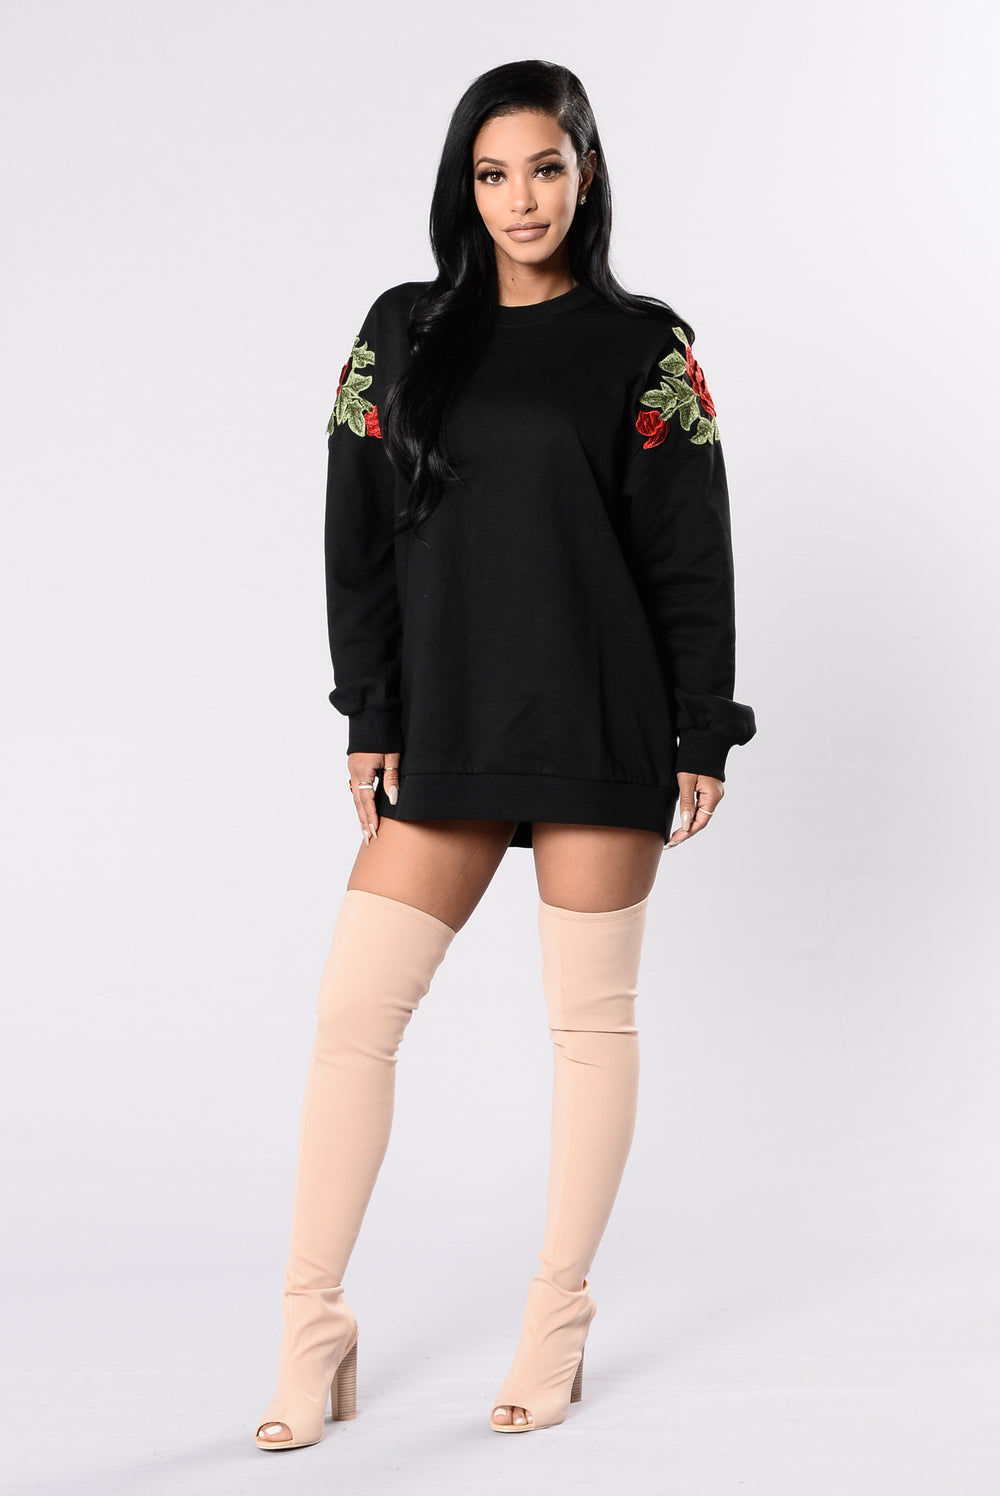 Rose Thorn Tunic - Black